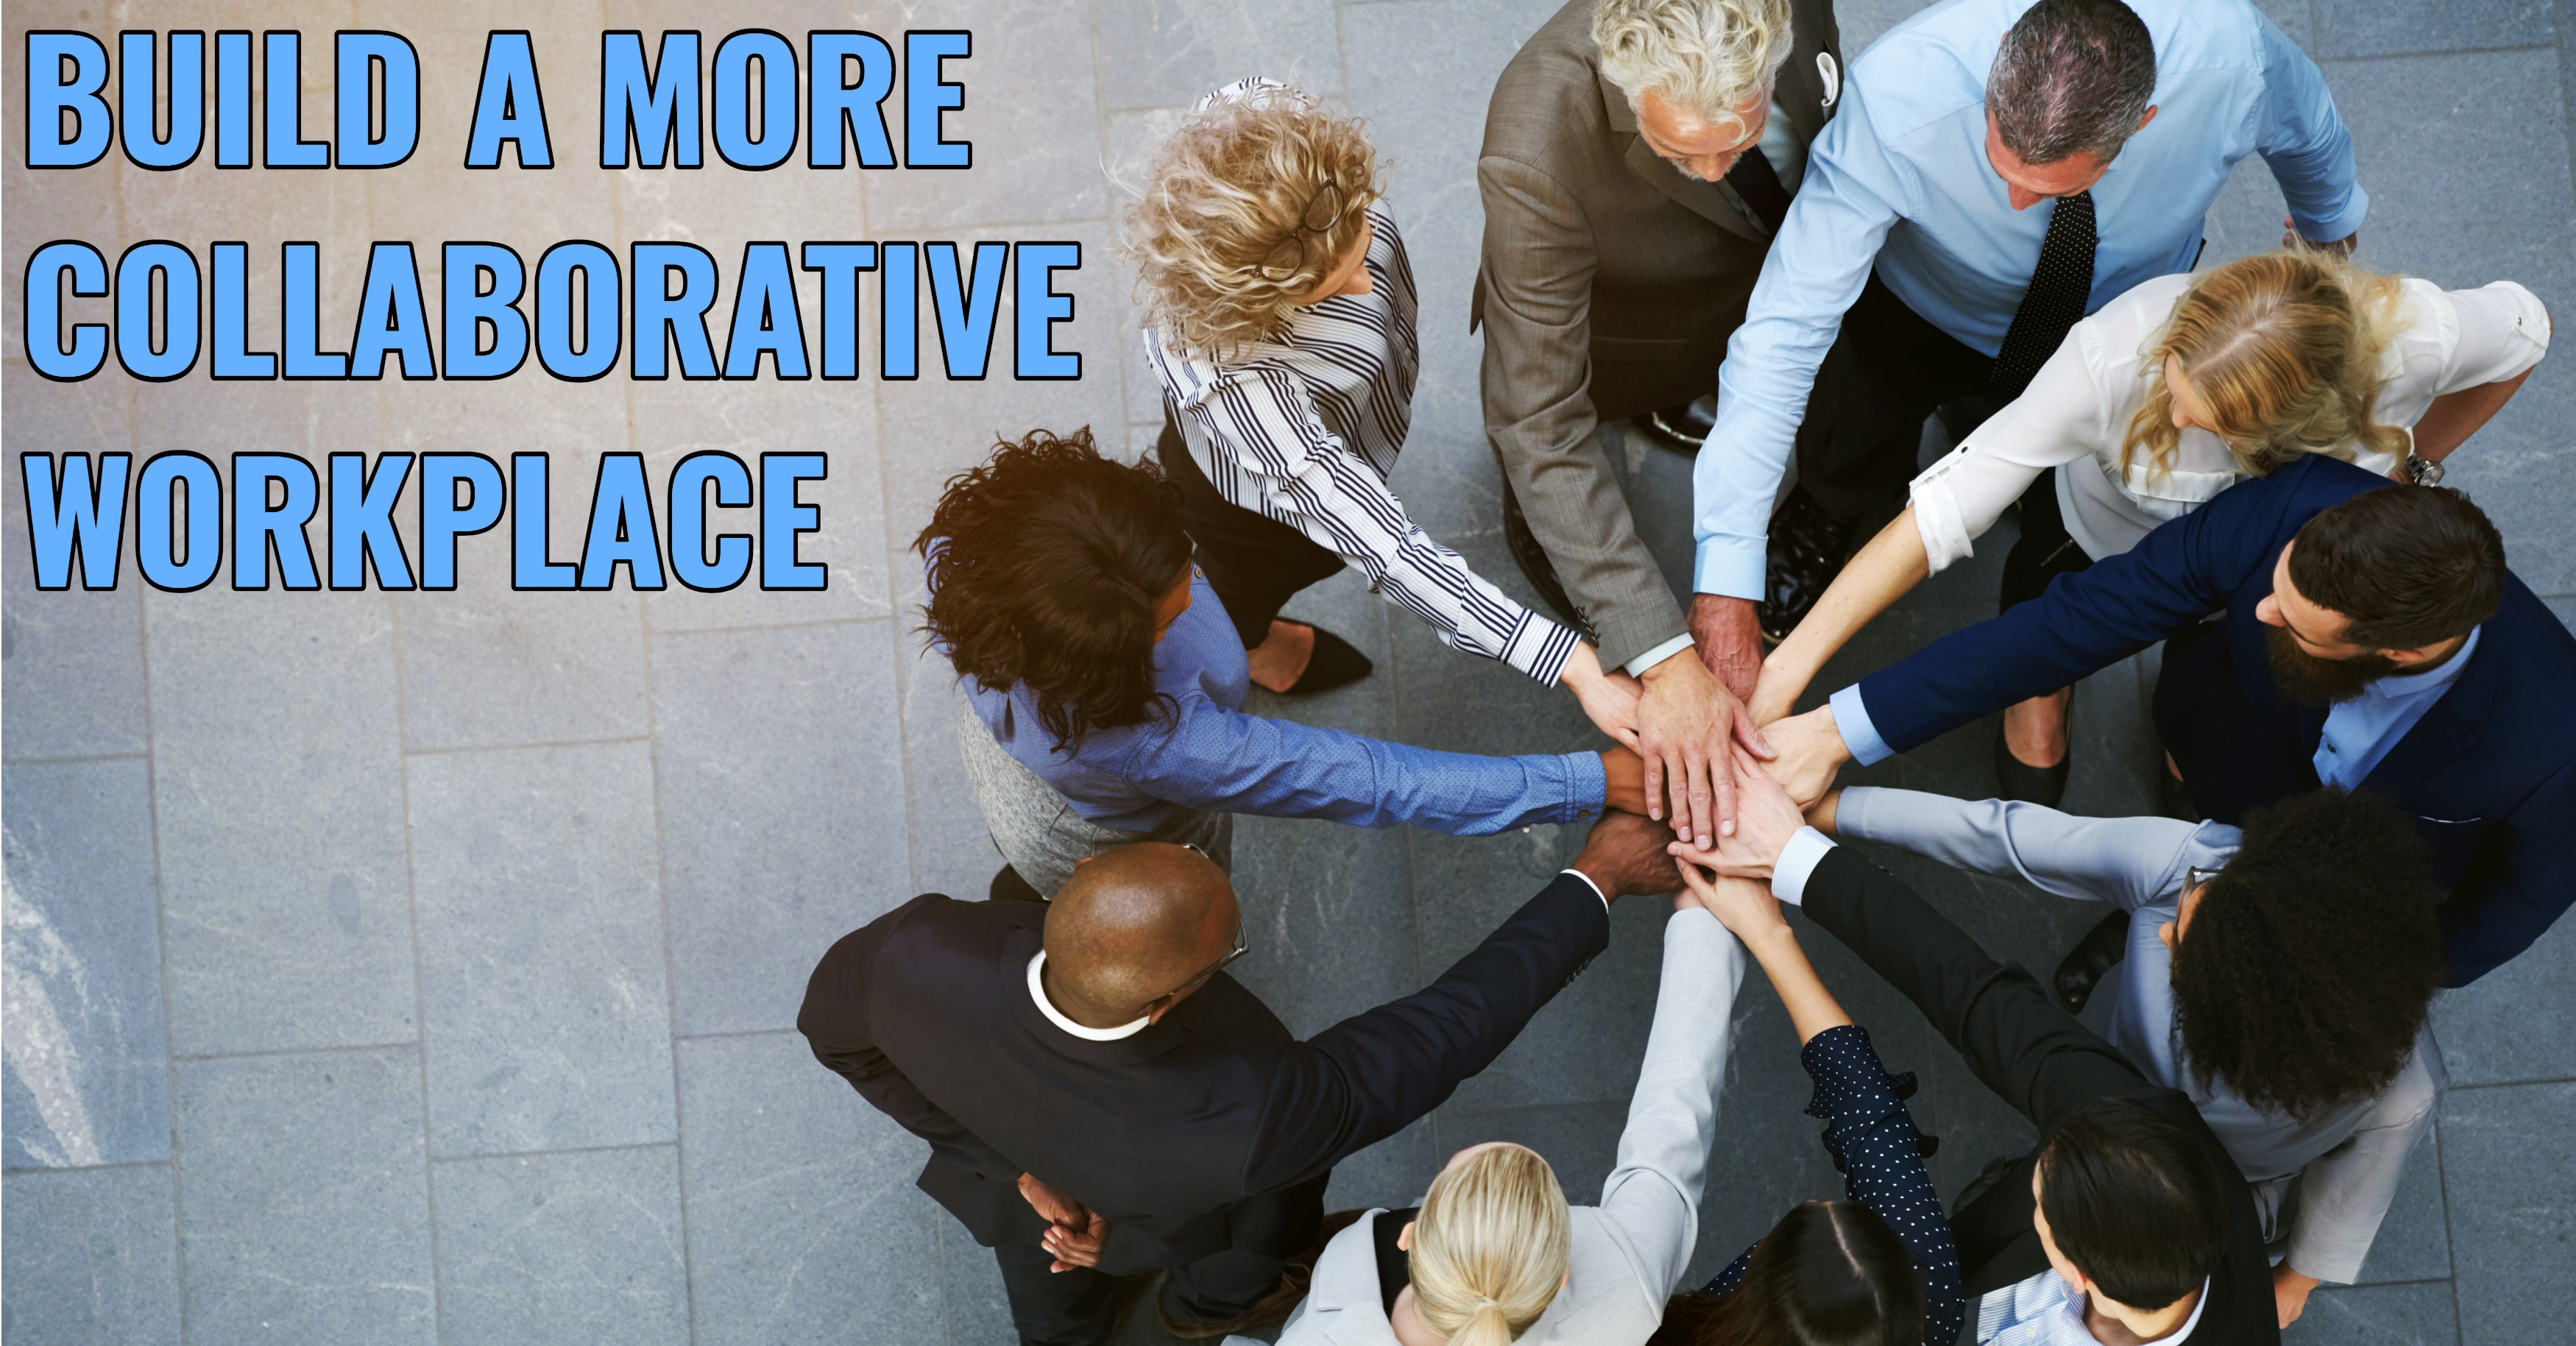 Build a More Collaborative Workplace